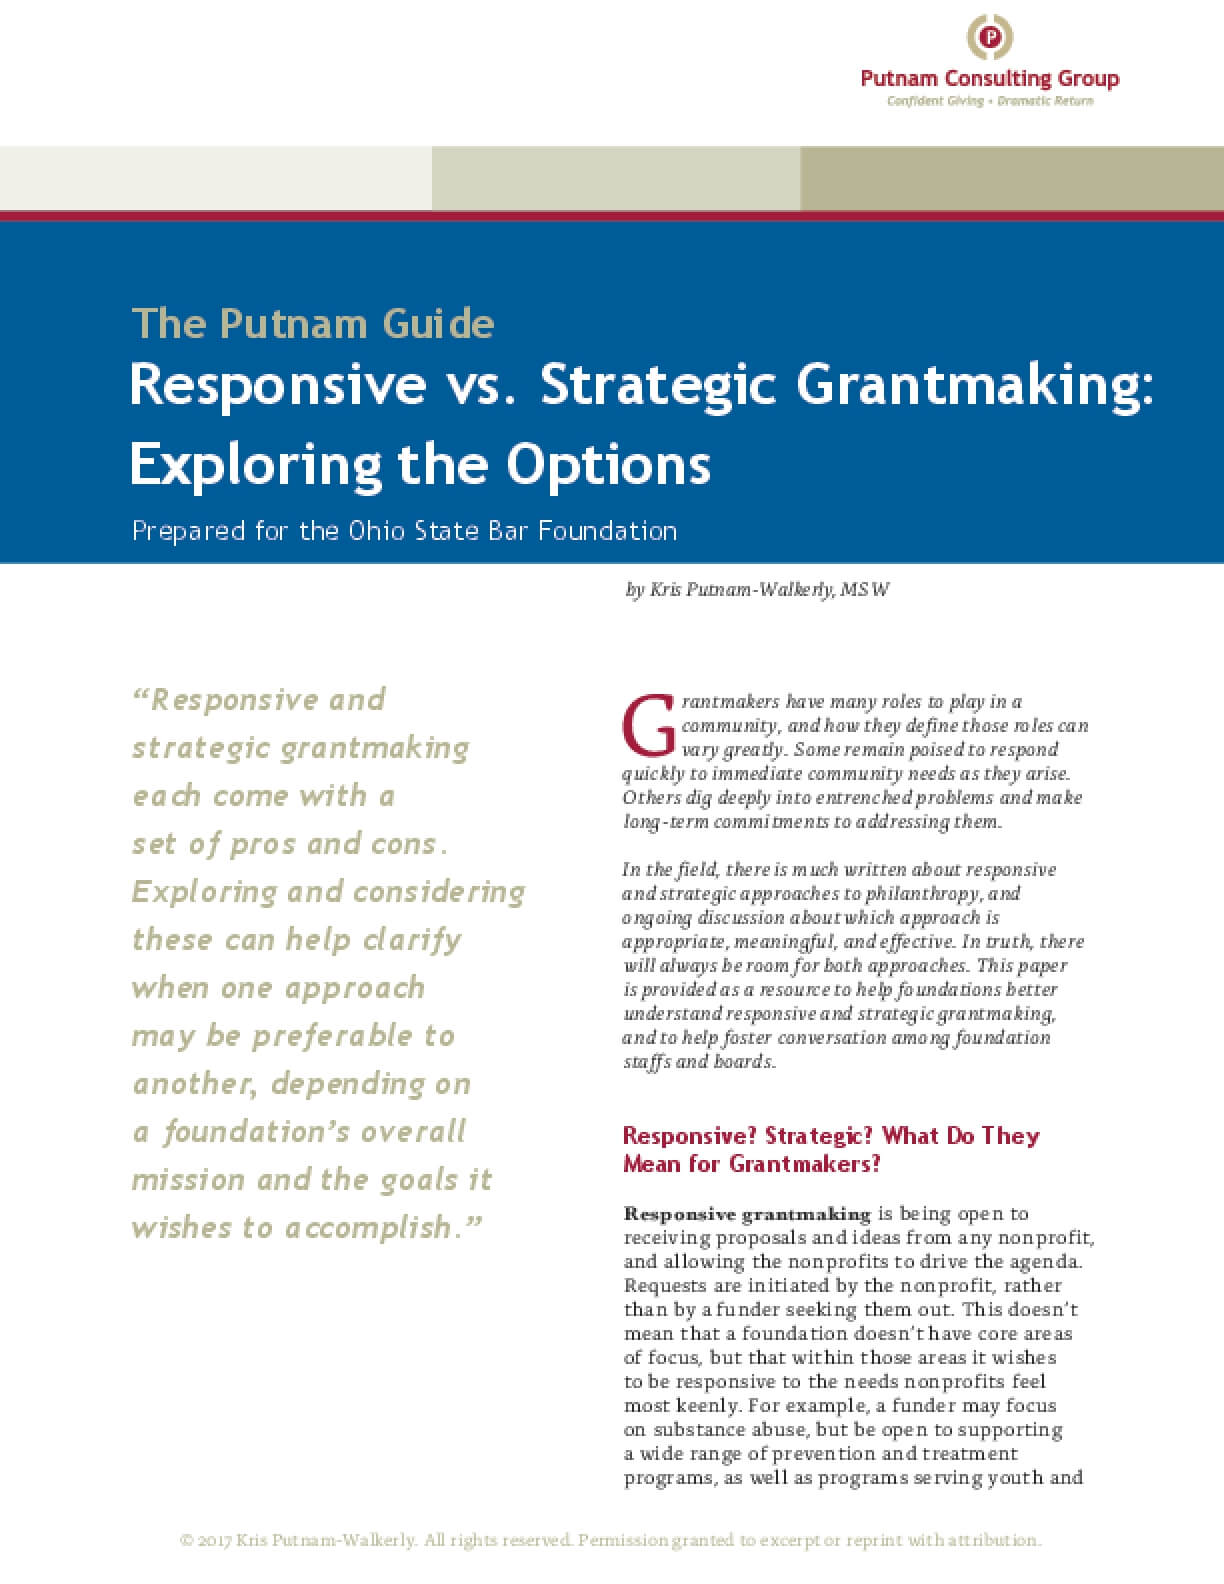 Responsive vs. Strategic Grantmaking: Exploring the Options